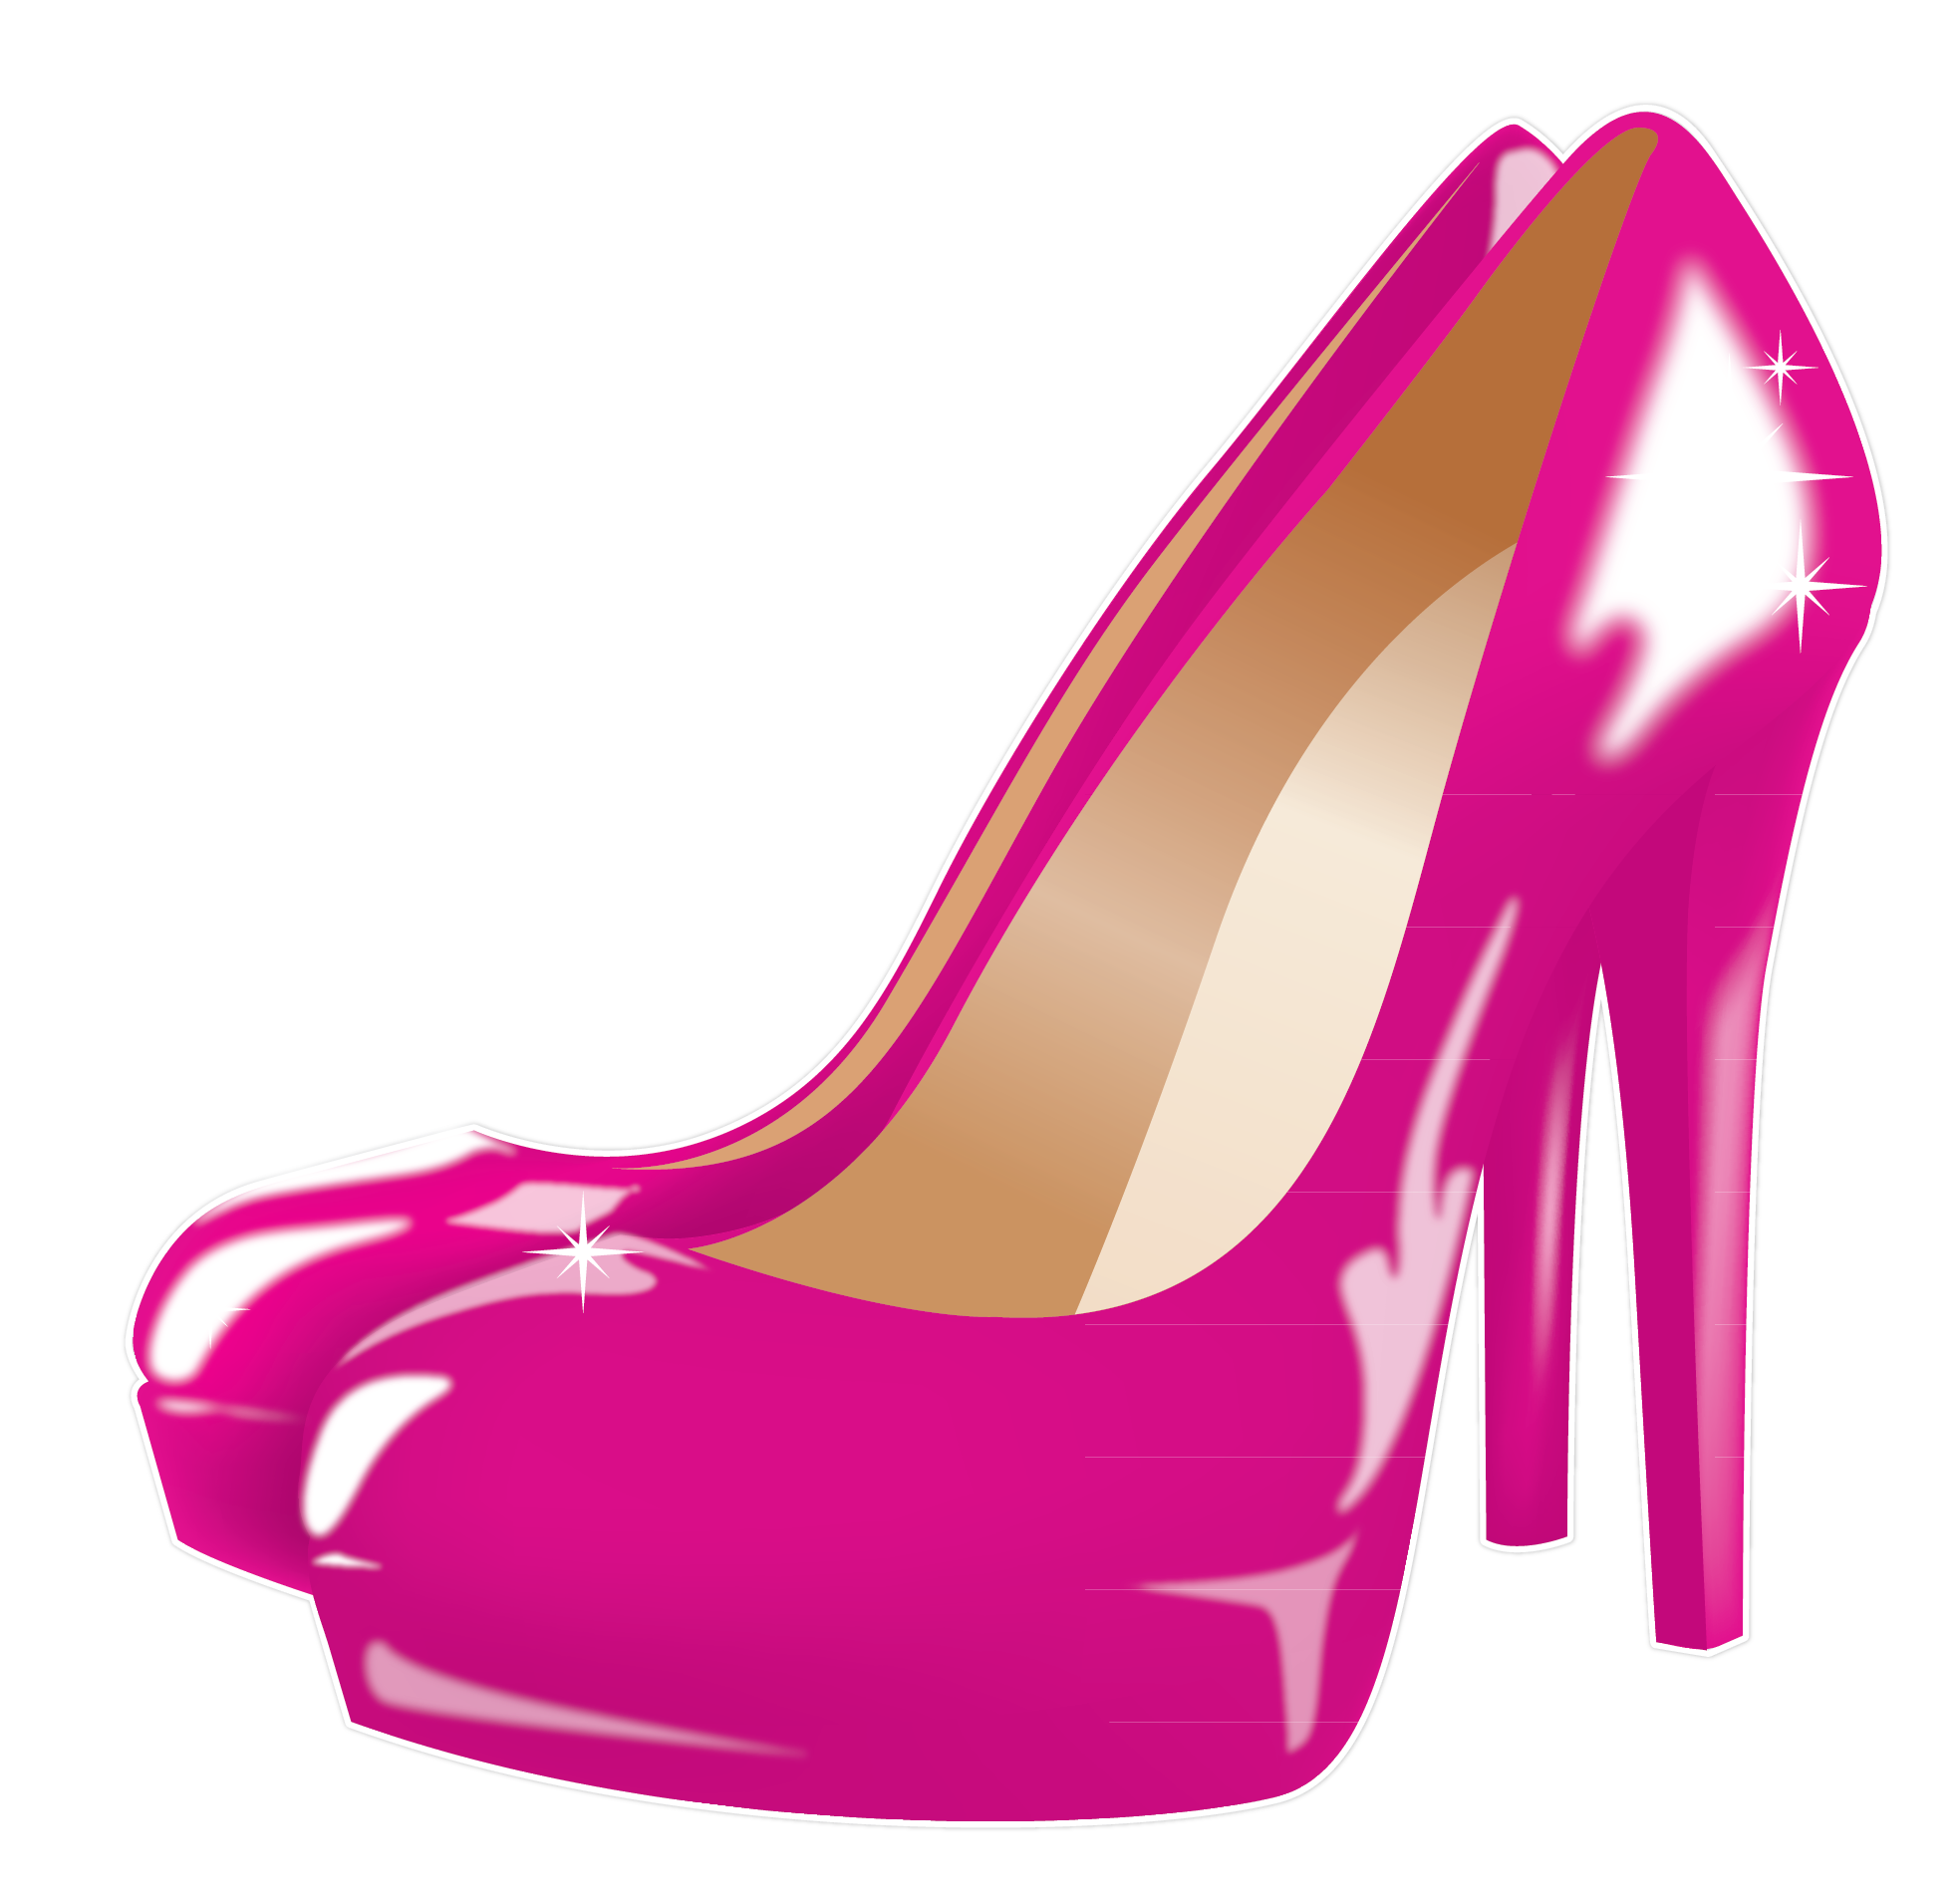 High heels and heels on cliparts-High heels and heels on cliparts-14